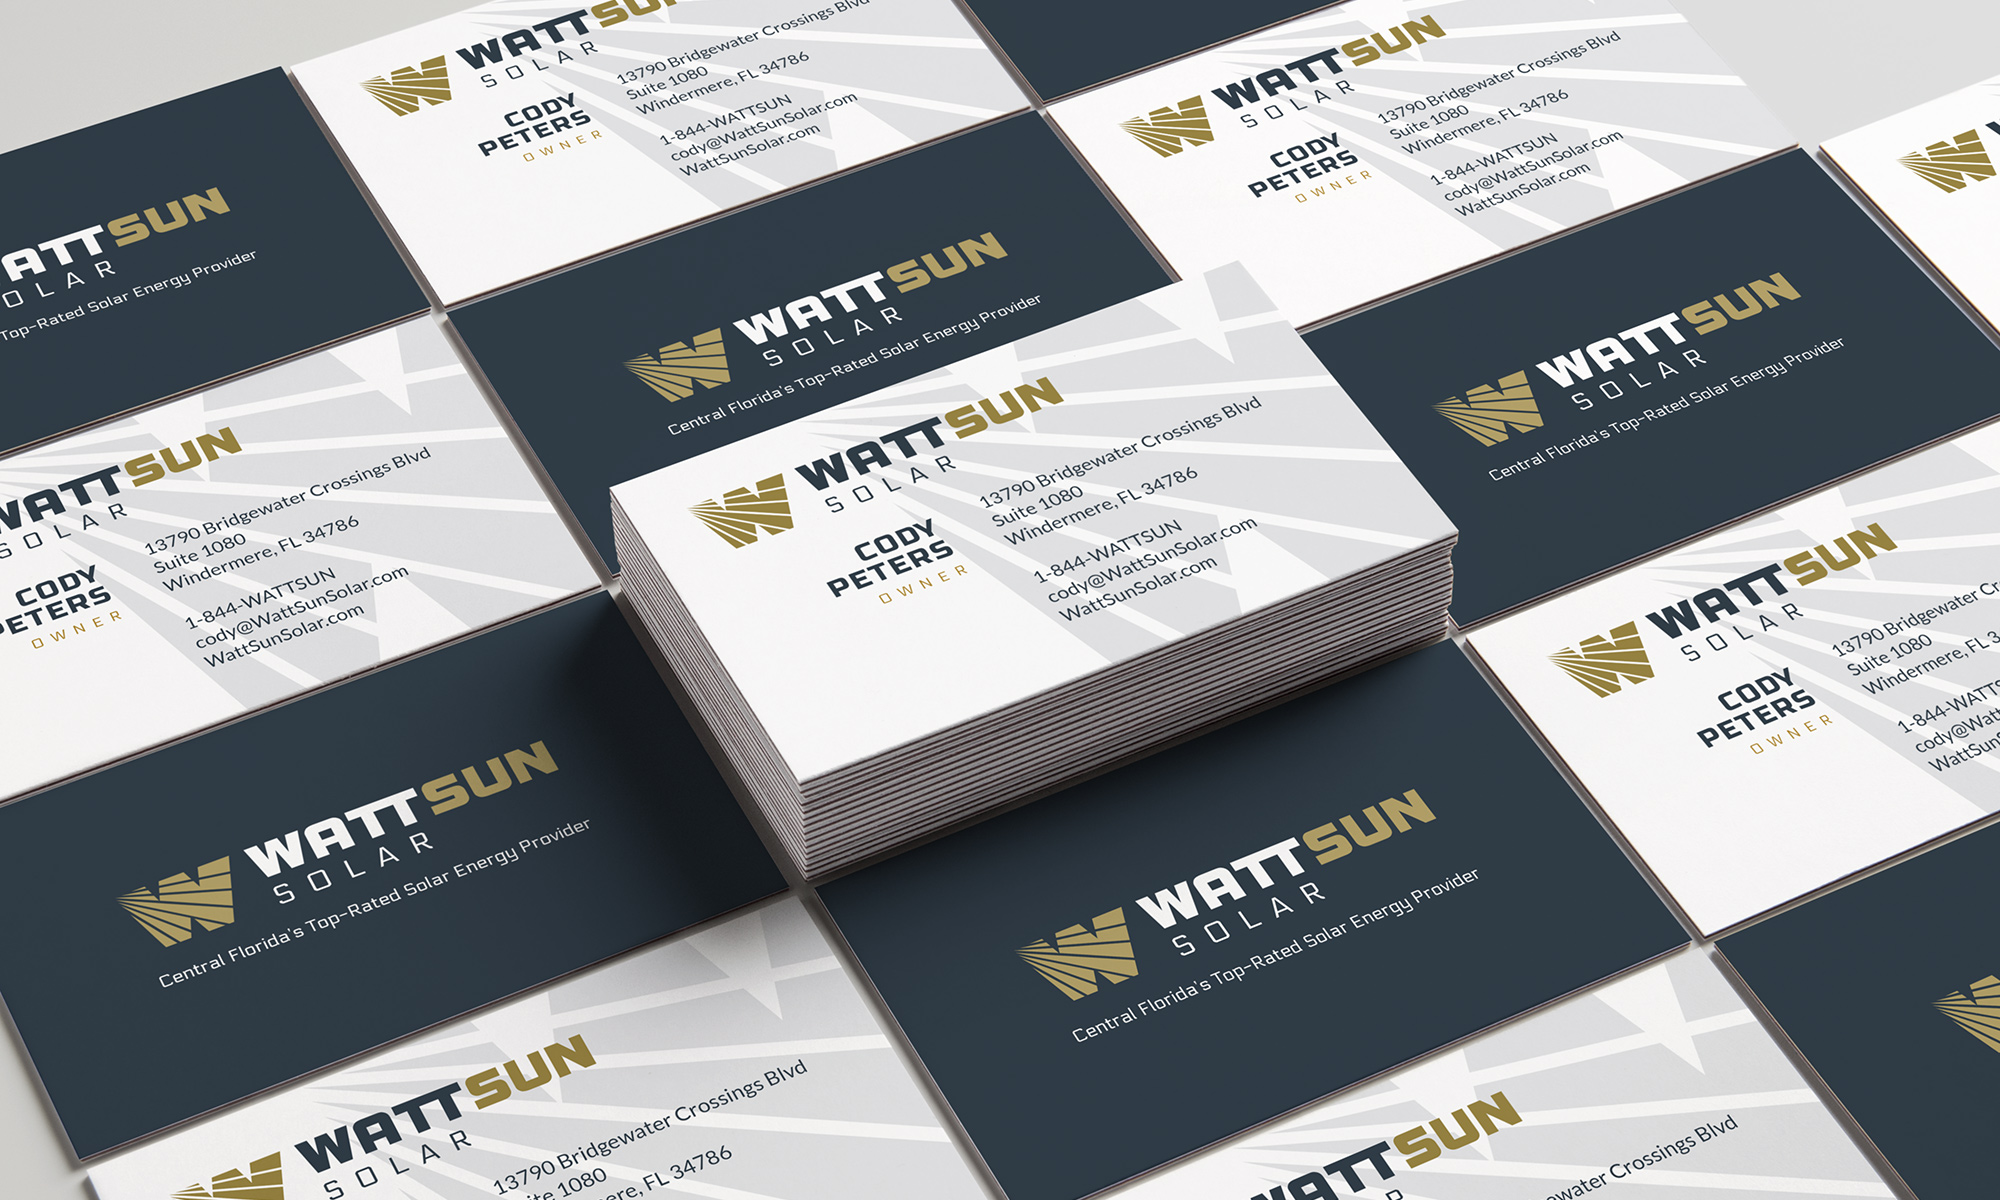 wattsun business card designs